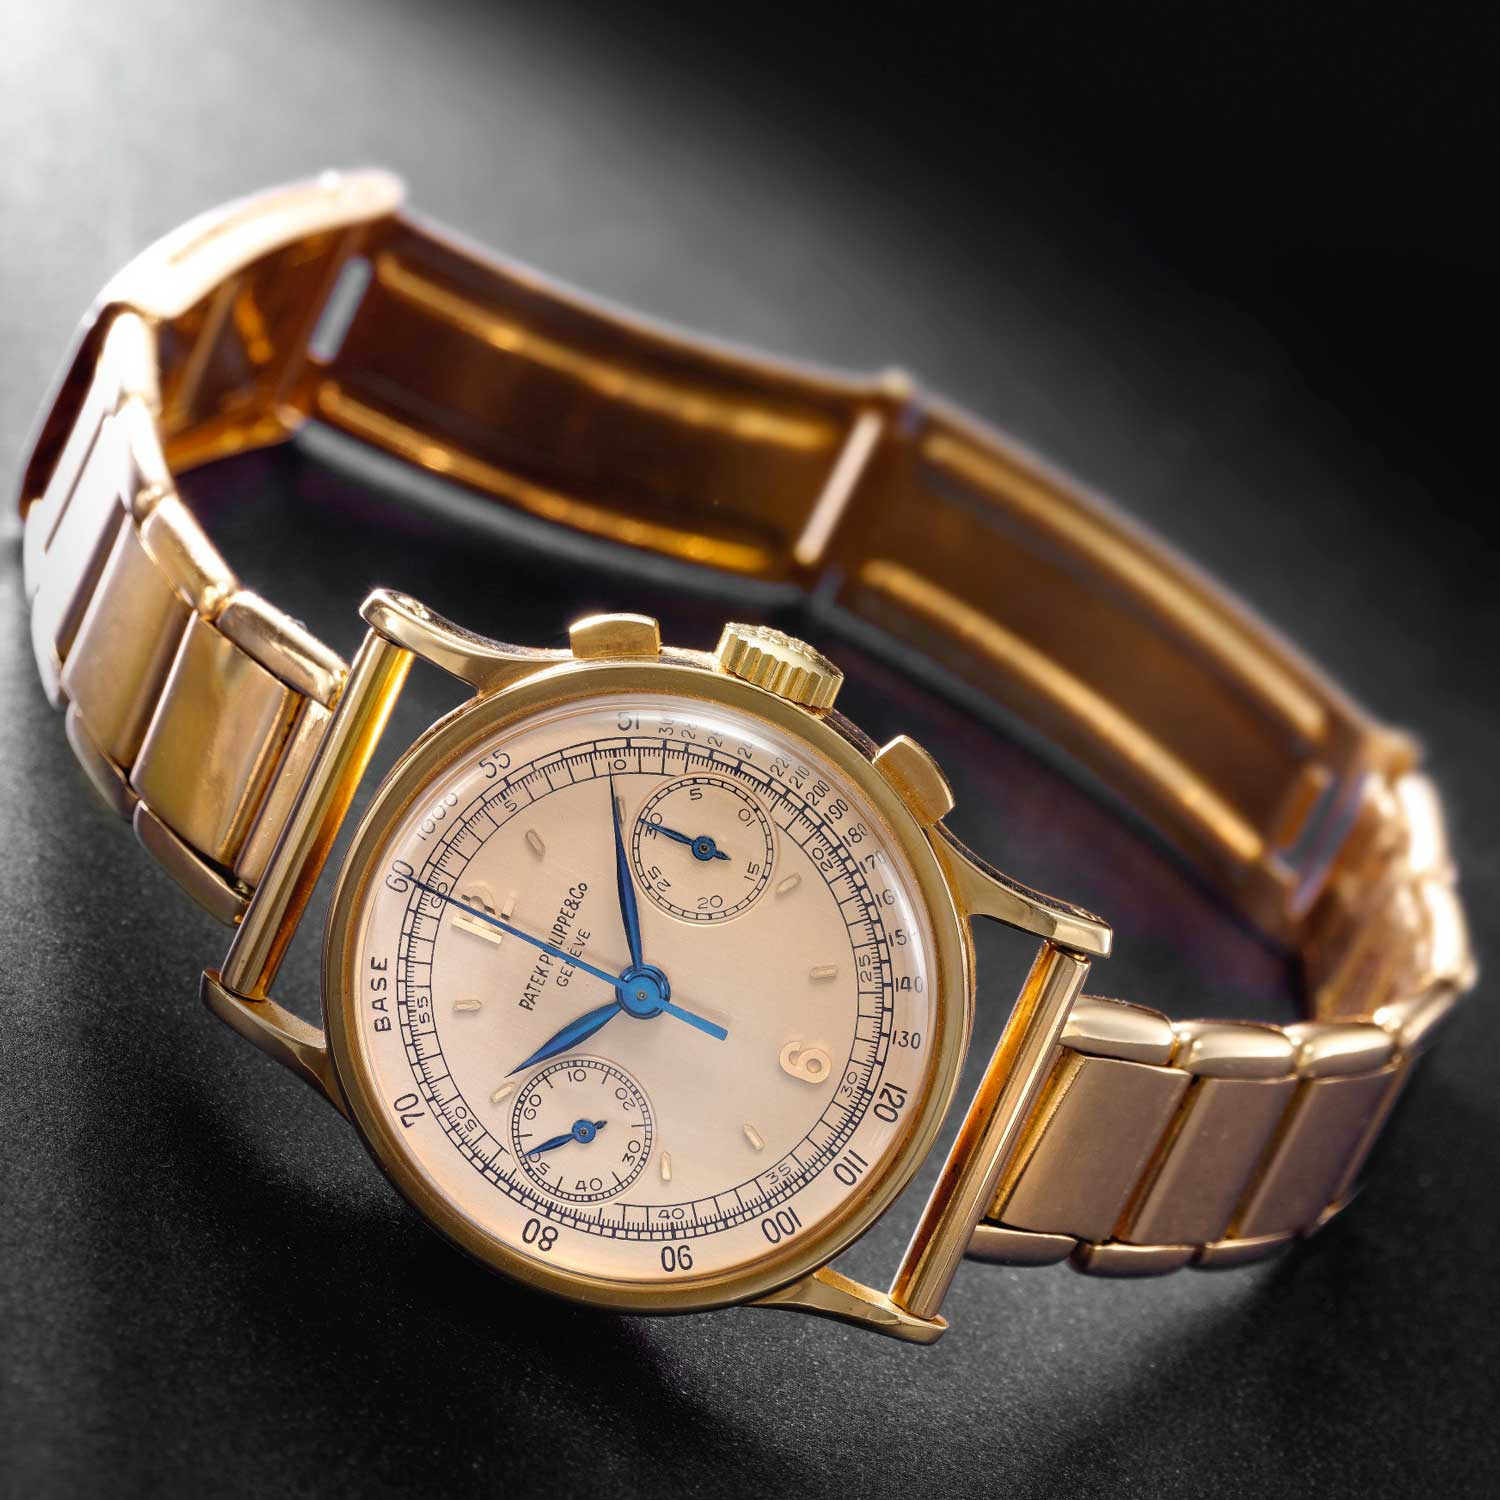 1947 Patek Philippe ref. 533 yellow gold chronograph with Arabic numerals fitted on a later 18k pink gold bracelet and folding clasp signed Patek Philippe (Image: Sothebys.com)